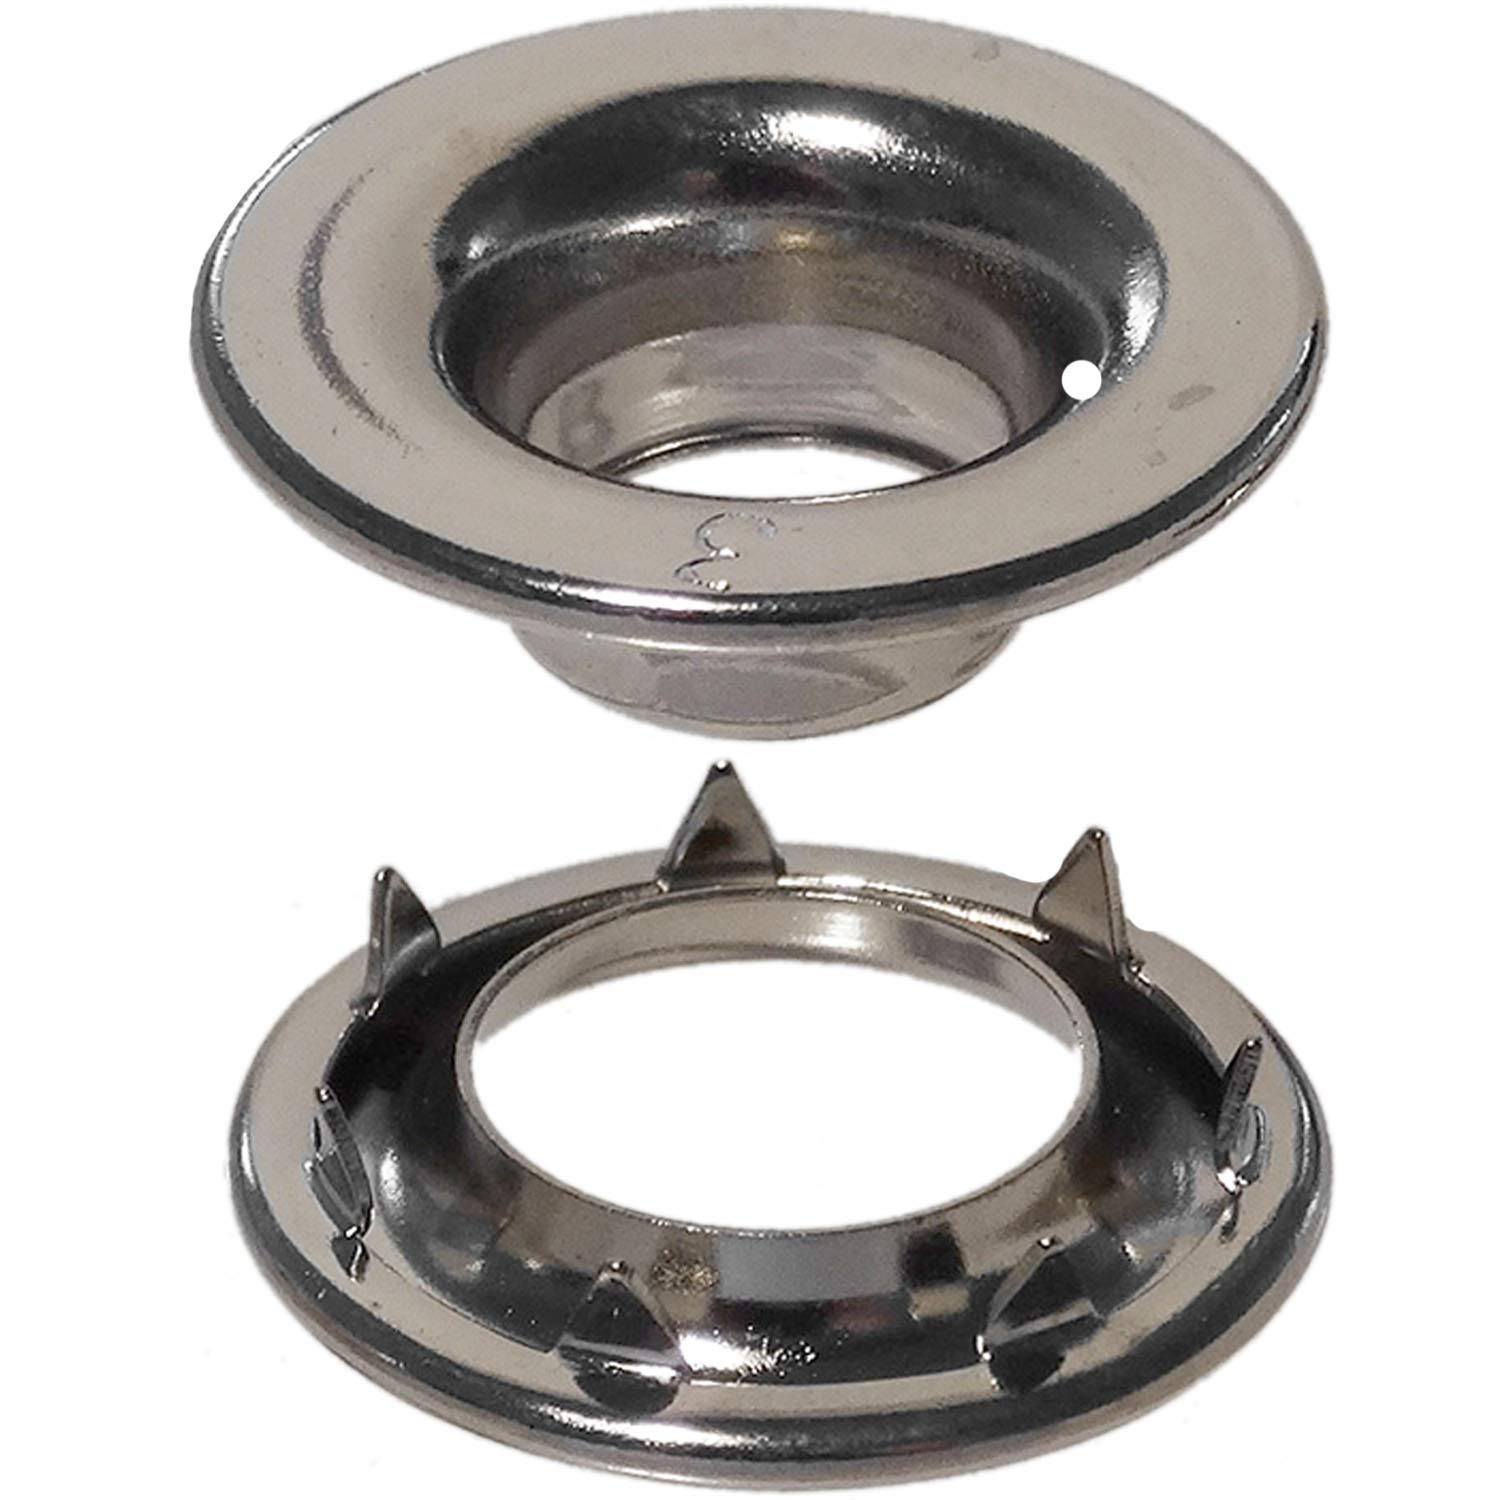 Stimpson Rolled Rim Grommet and Spur Washer Nickel-Plated Durable, Reliable, Heavy-Duty #3 Set (720 Pieces of Each)